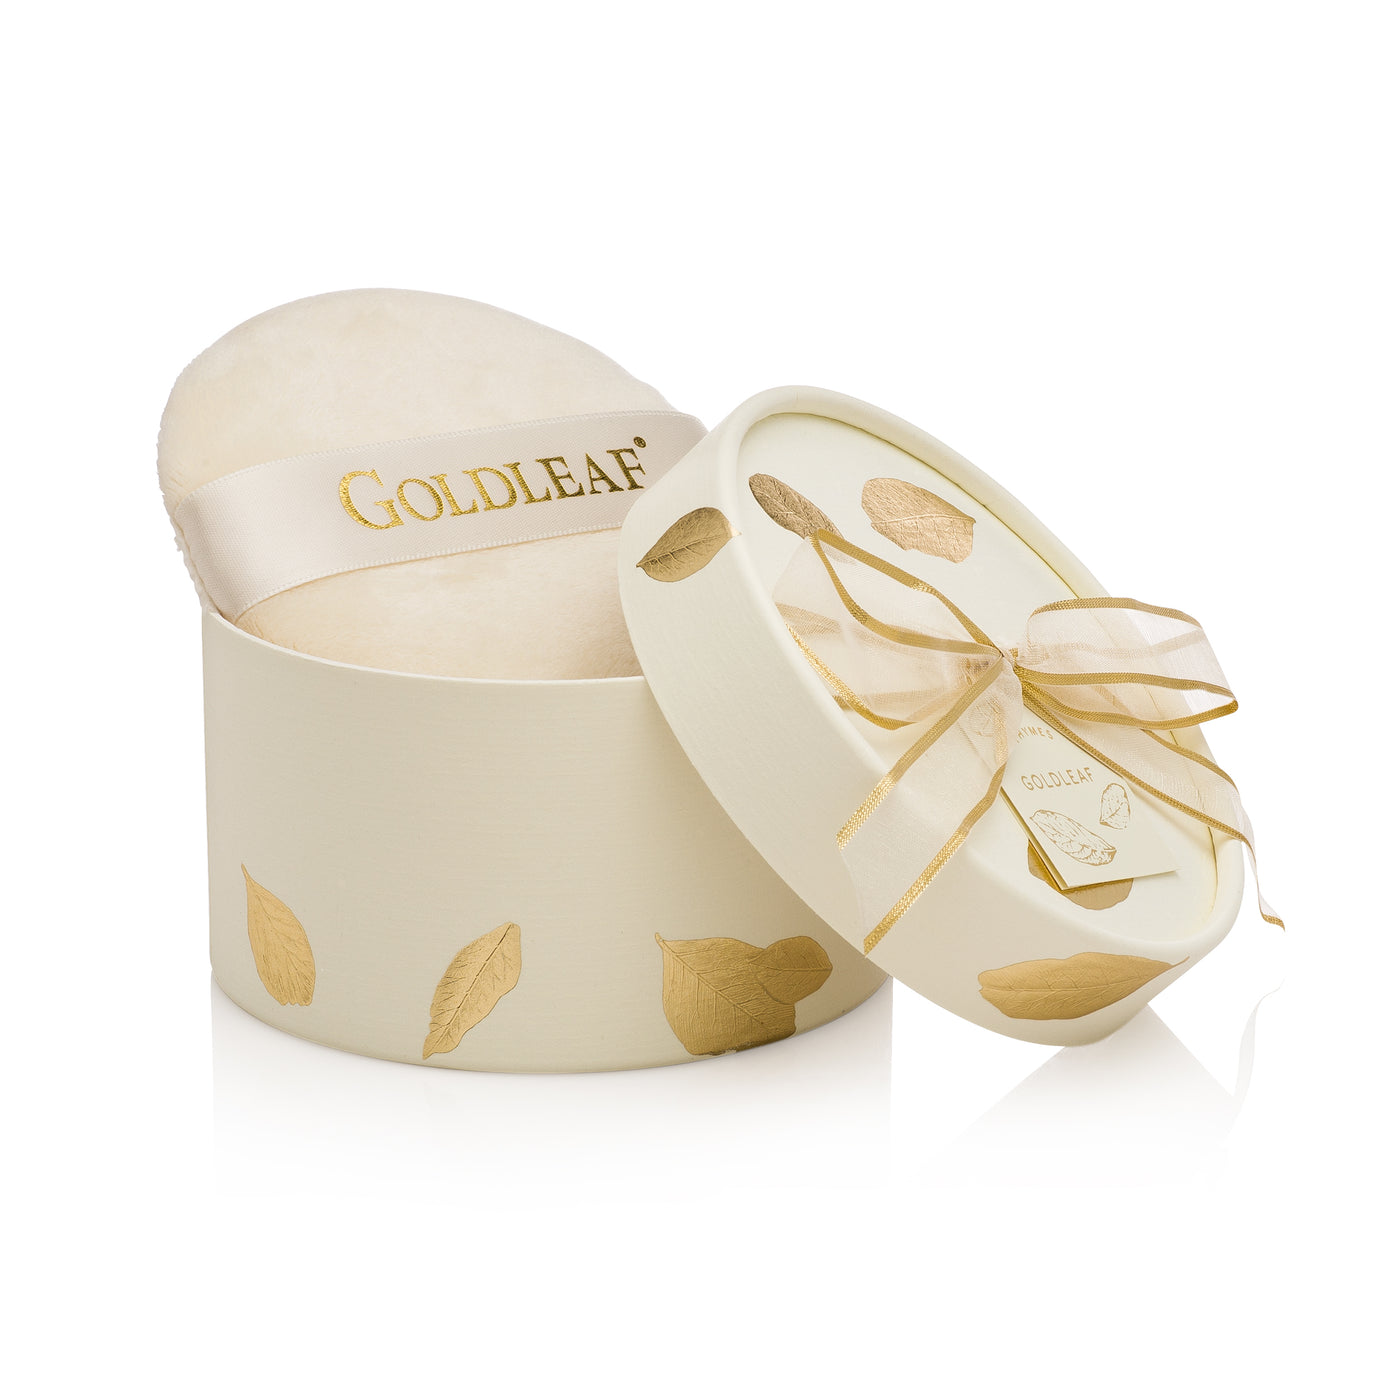 Goldleaf Perfumed Dusting Powder with Puff